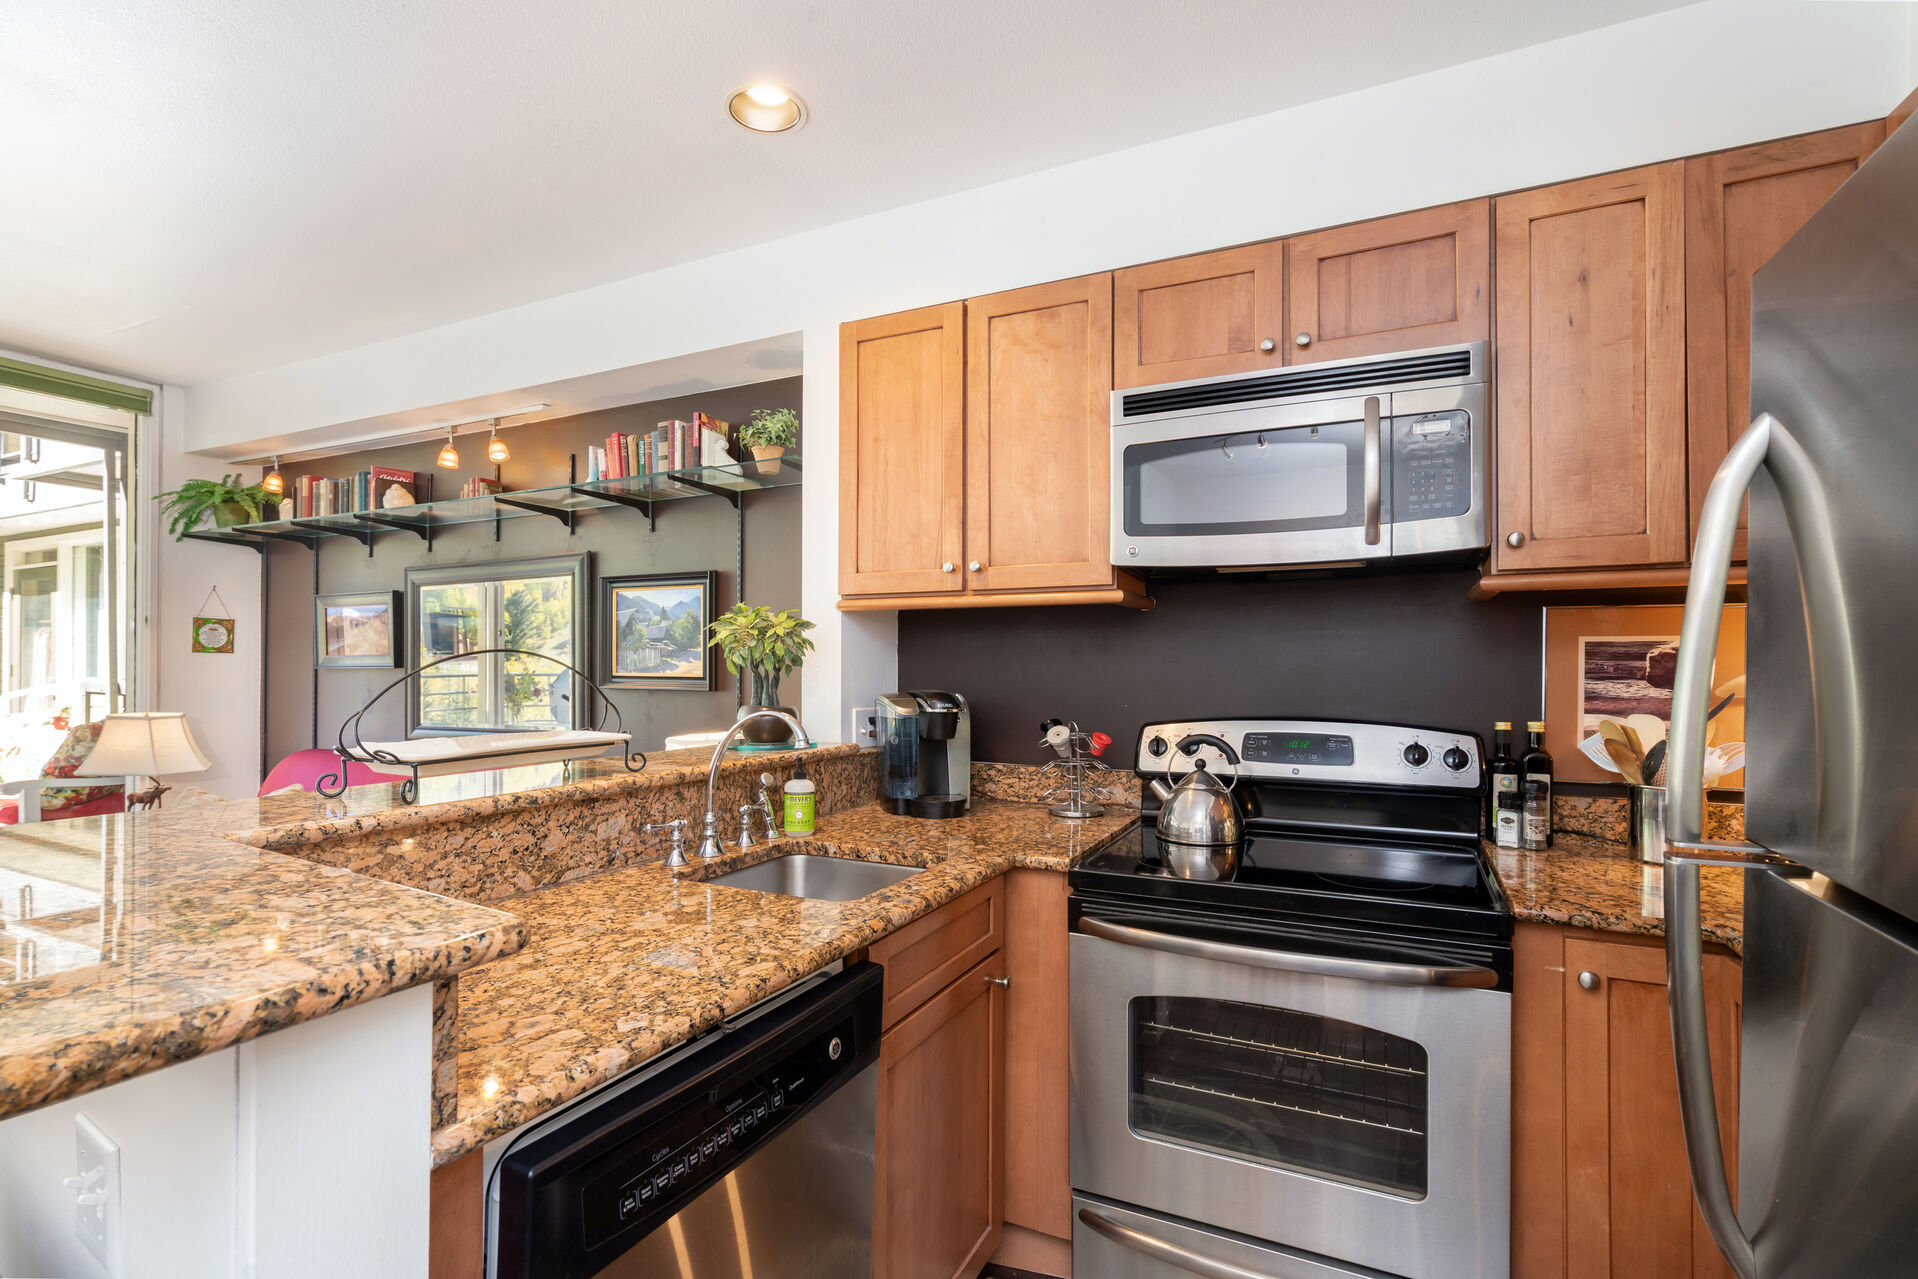 The kitchen of this Telluride condo, with stainless steel appliances and bar seating.